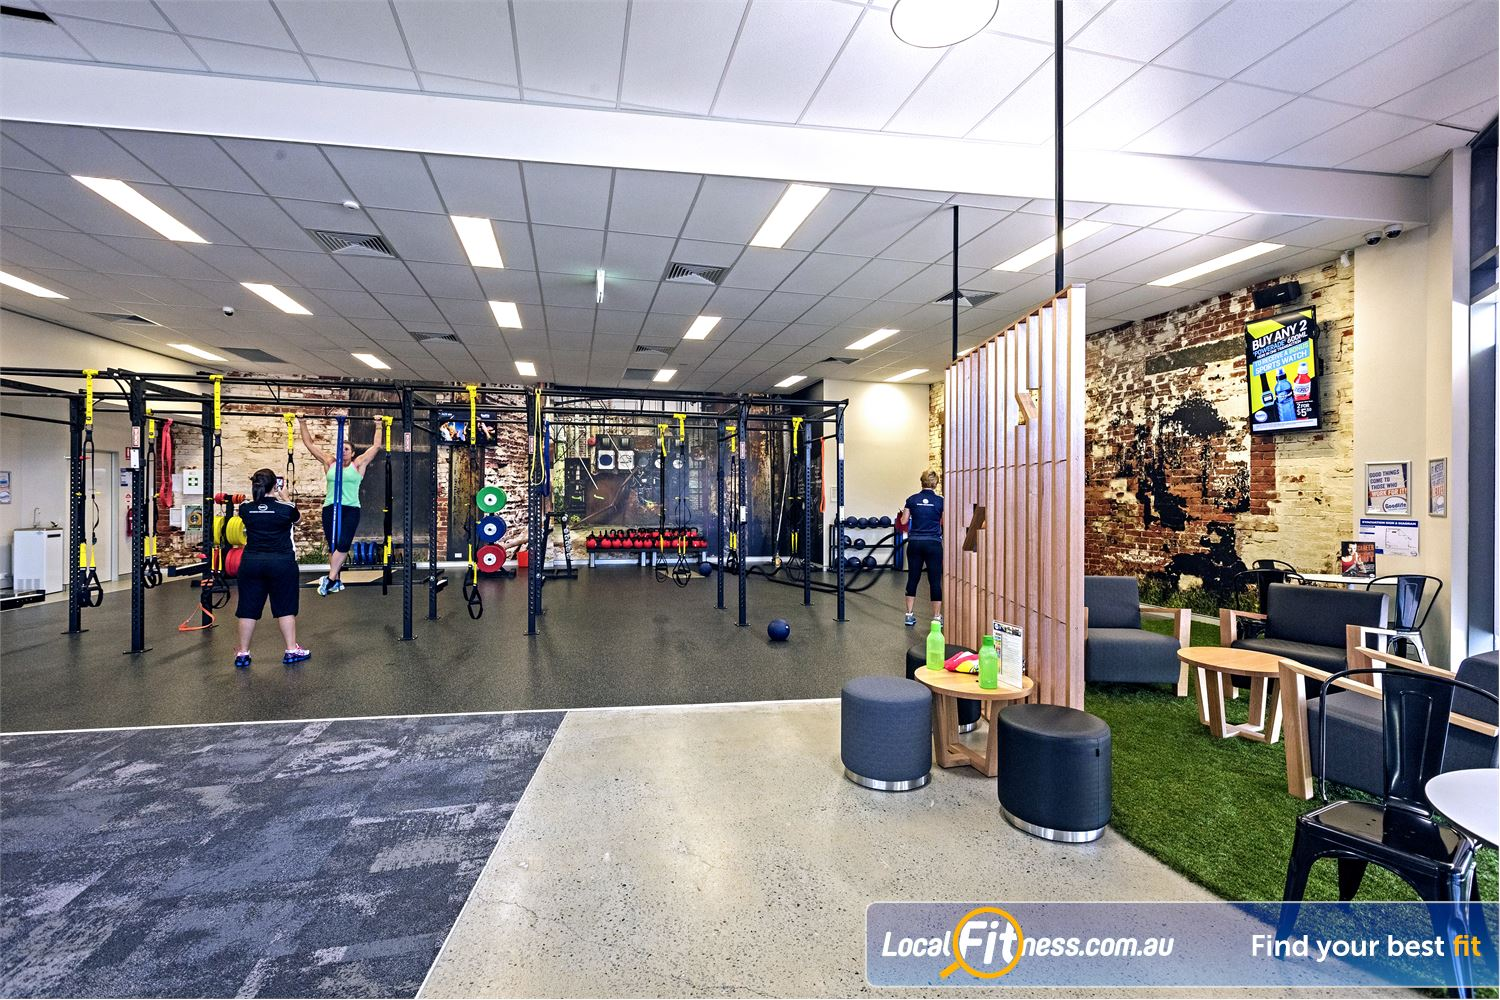 Goodlife Health Clubs Helensvale The state of the art Helensvale gym at Westfield Helensvale.